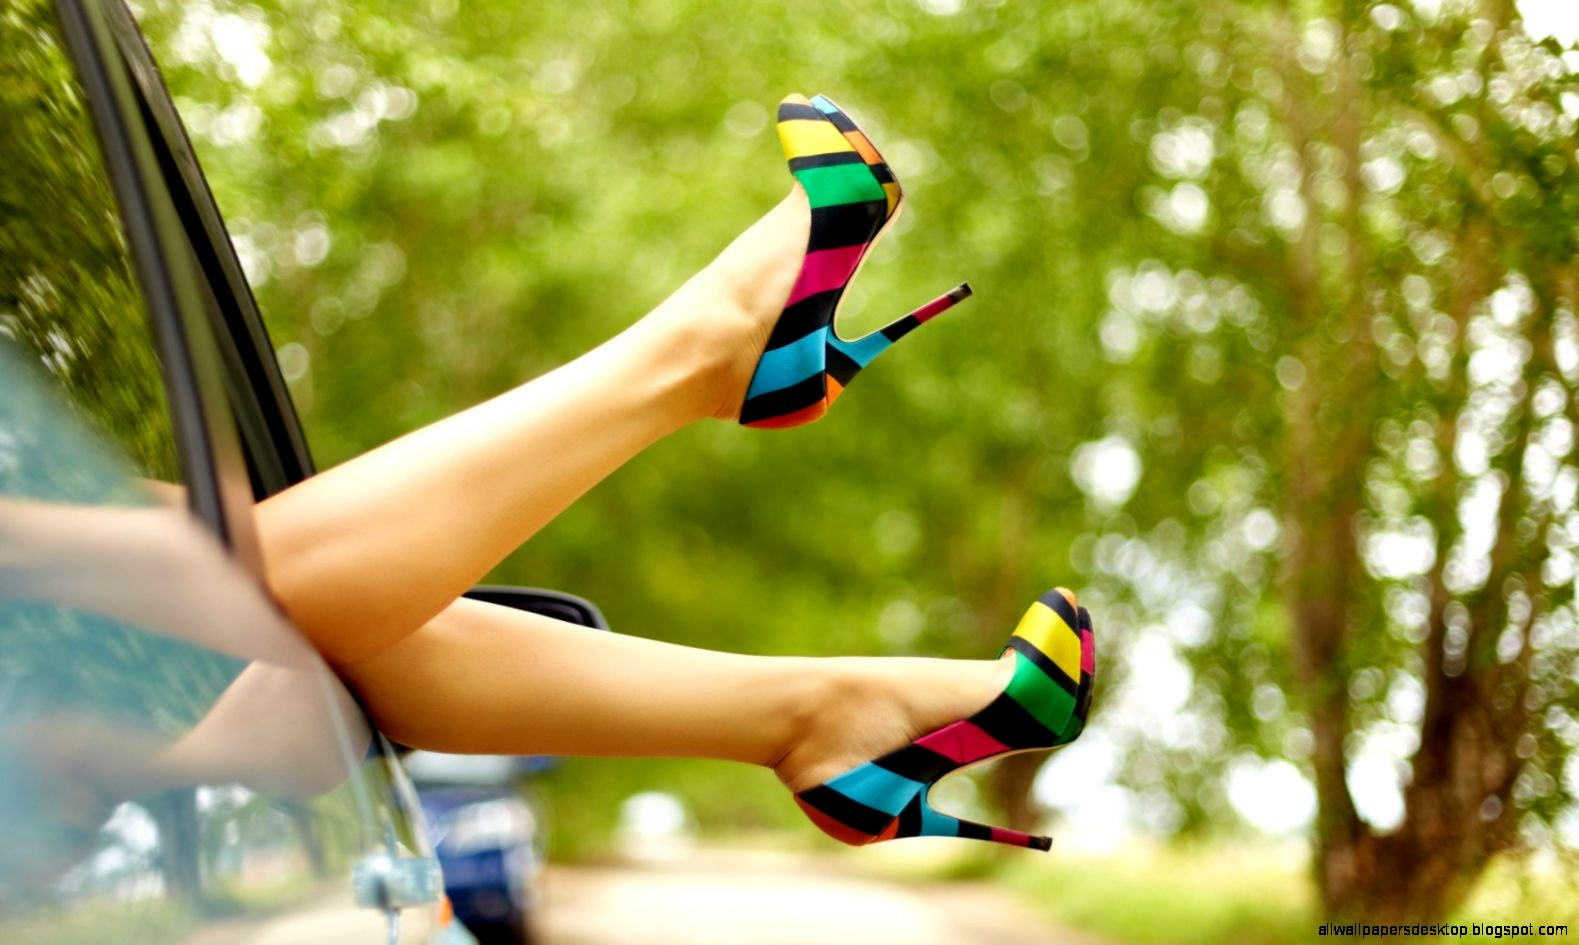 mood girl legs feet shoes car hd wallpaper    latest